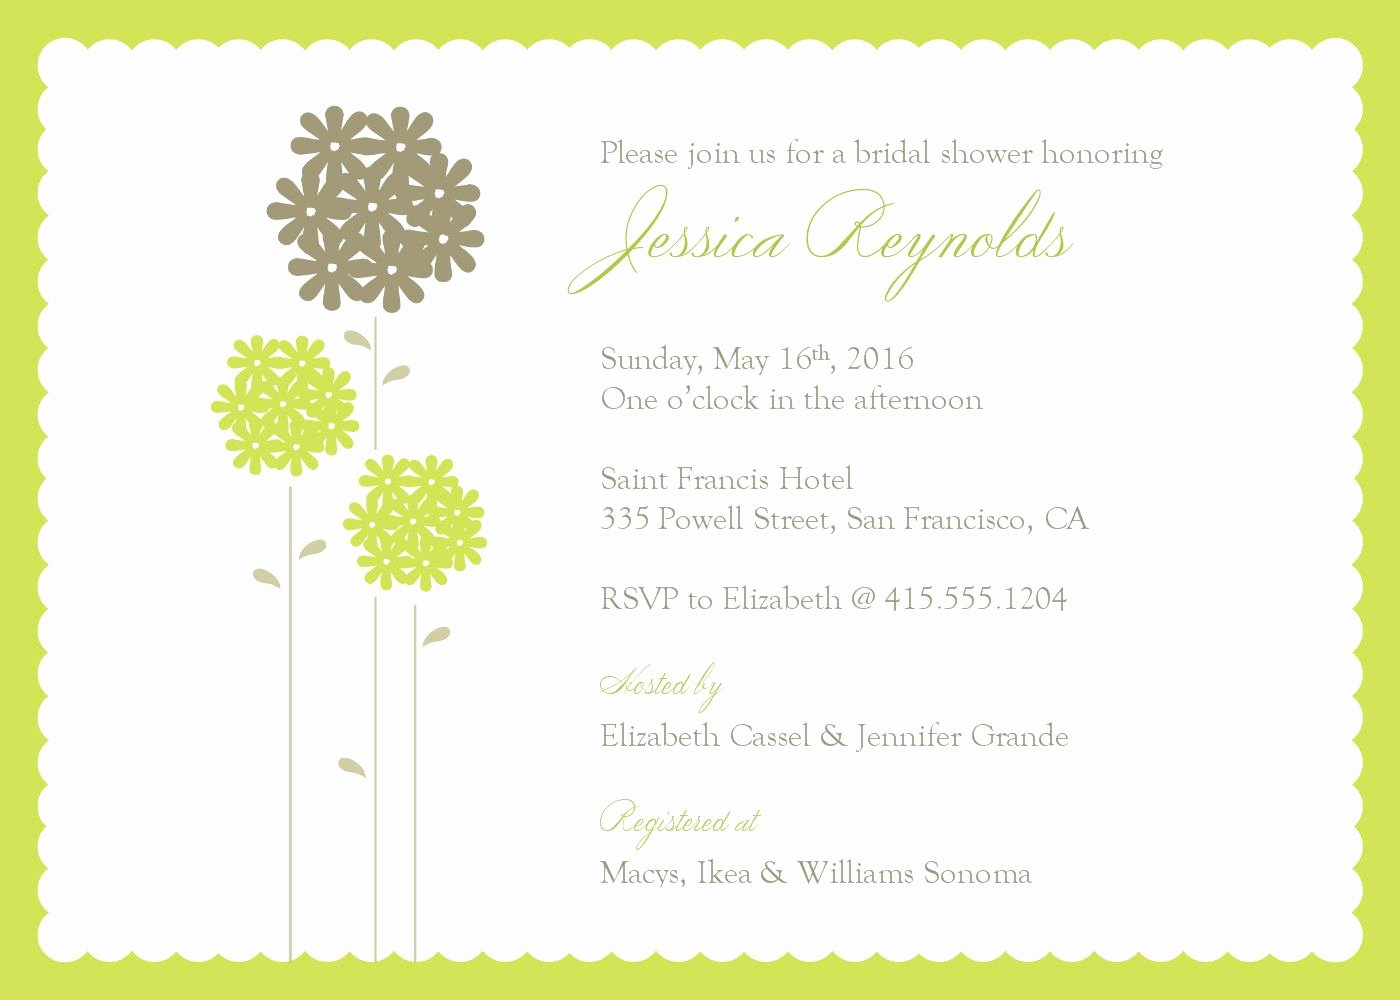 Bridal Shower Invite Template Best Of Bridal Shower Invitations Bridal Shower Invitations